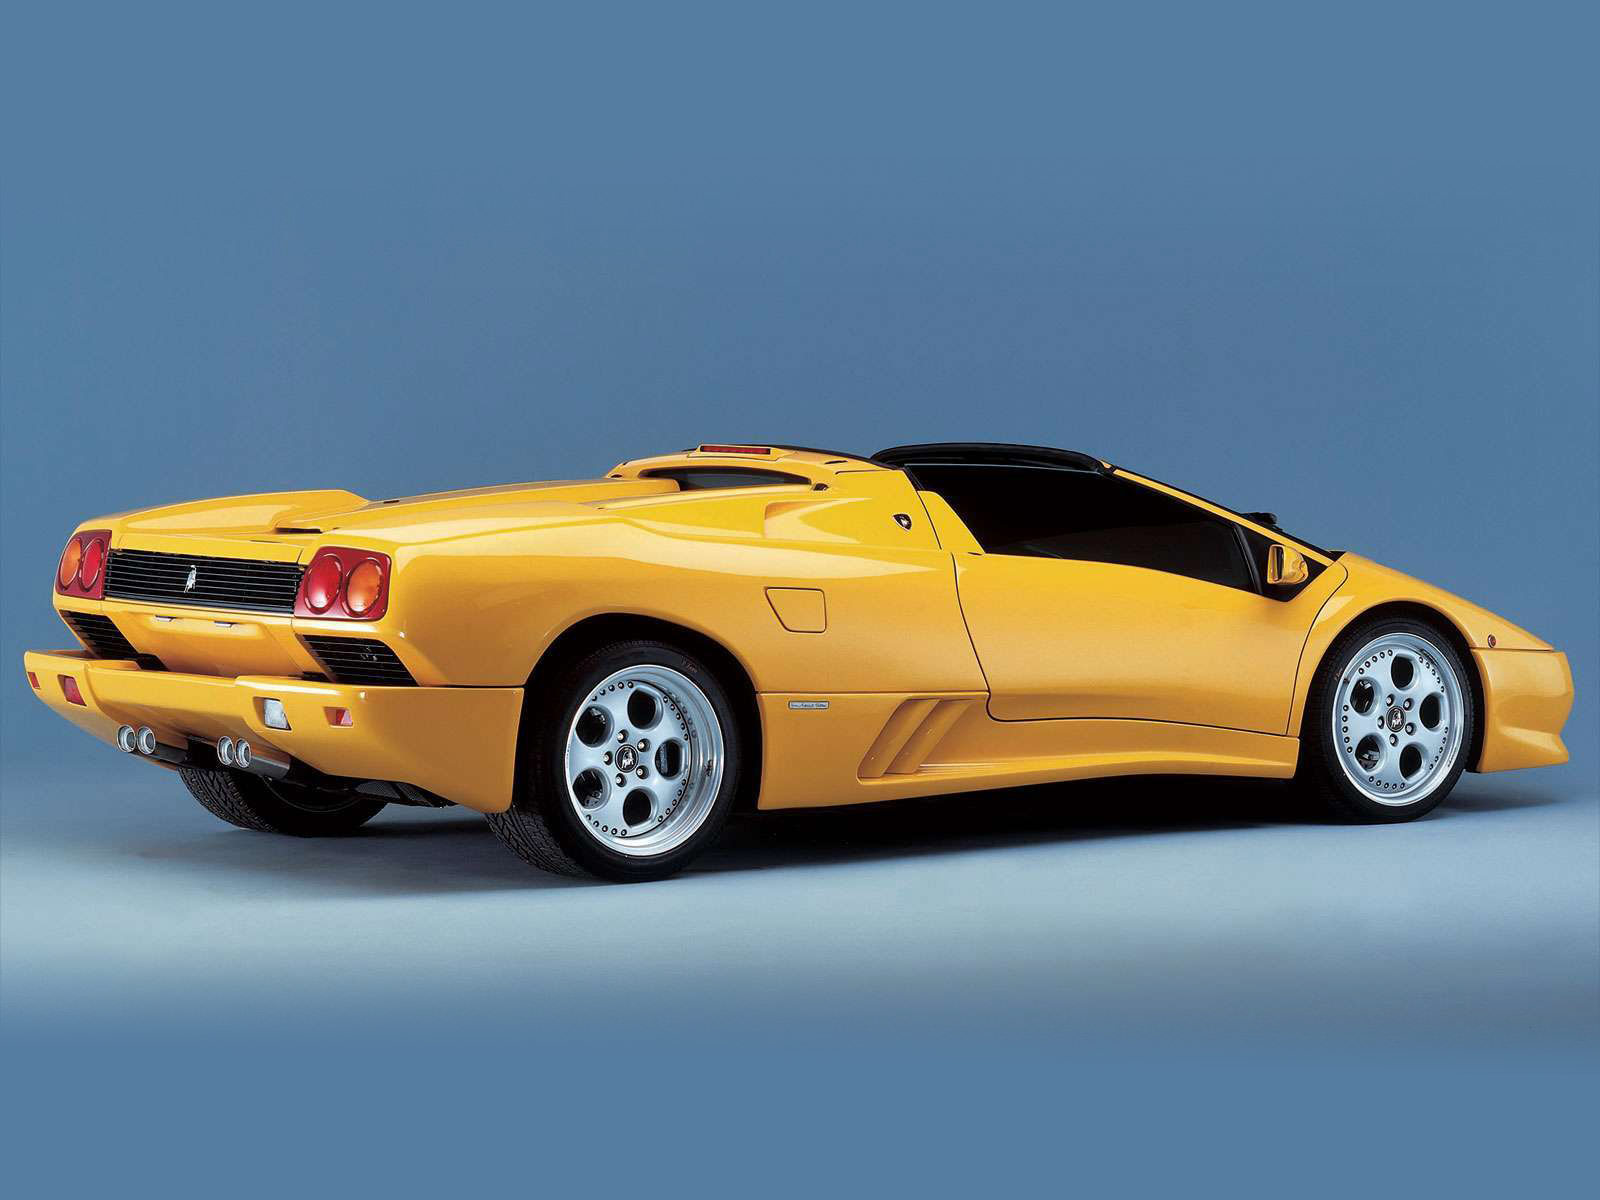 http://4.bp.blogspot.com/-WofsWZBRwoY/Tkich5Ow7qI/AAAAAAAACag/Gv37BCP9BWg/s1600/Diablo_Roadster_1996_LAMBORGHINI-pictures_4.jpg